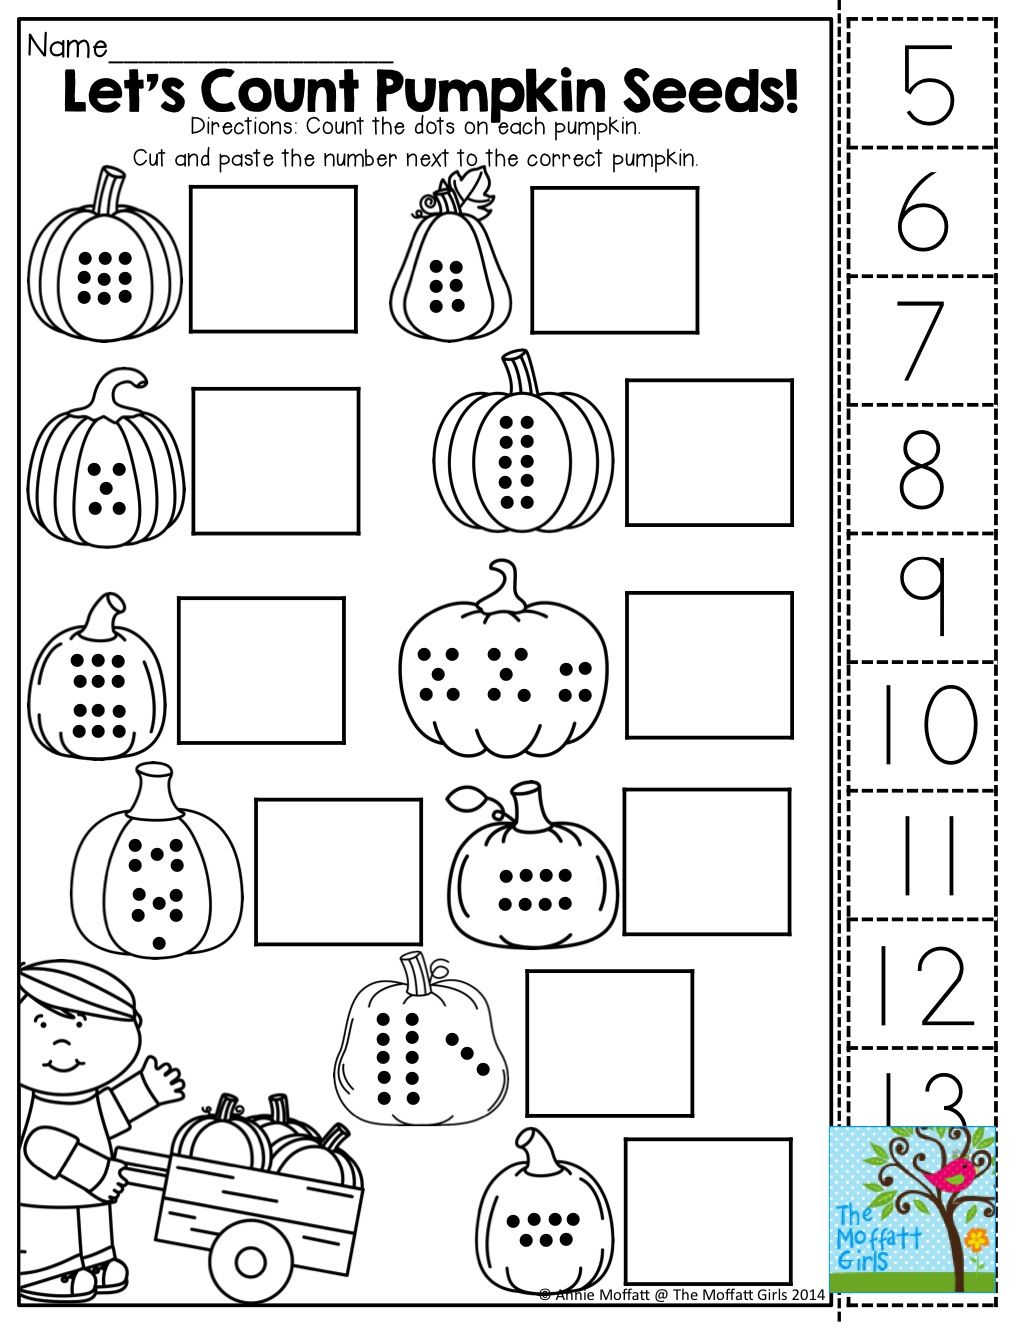 Count, Cut And Paste! Tons Of Fun Printables! | Kindergarten